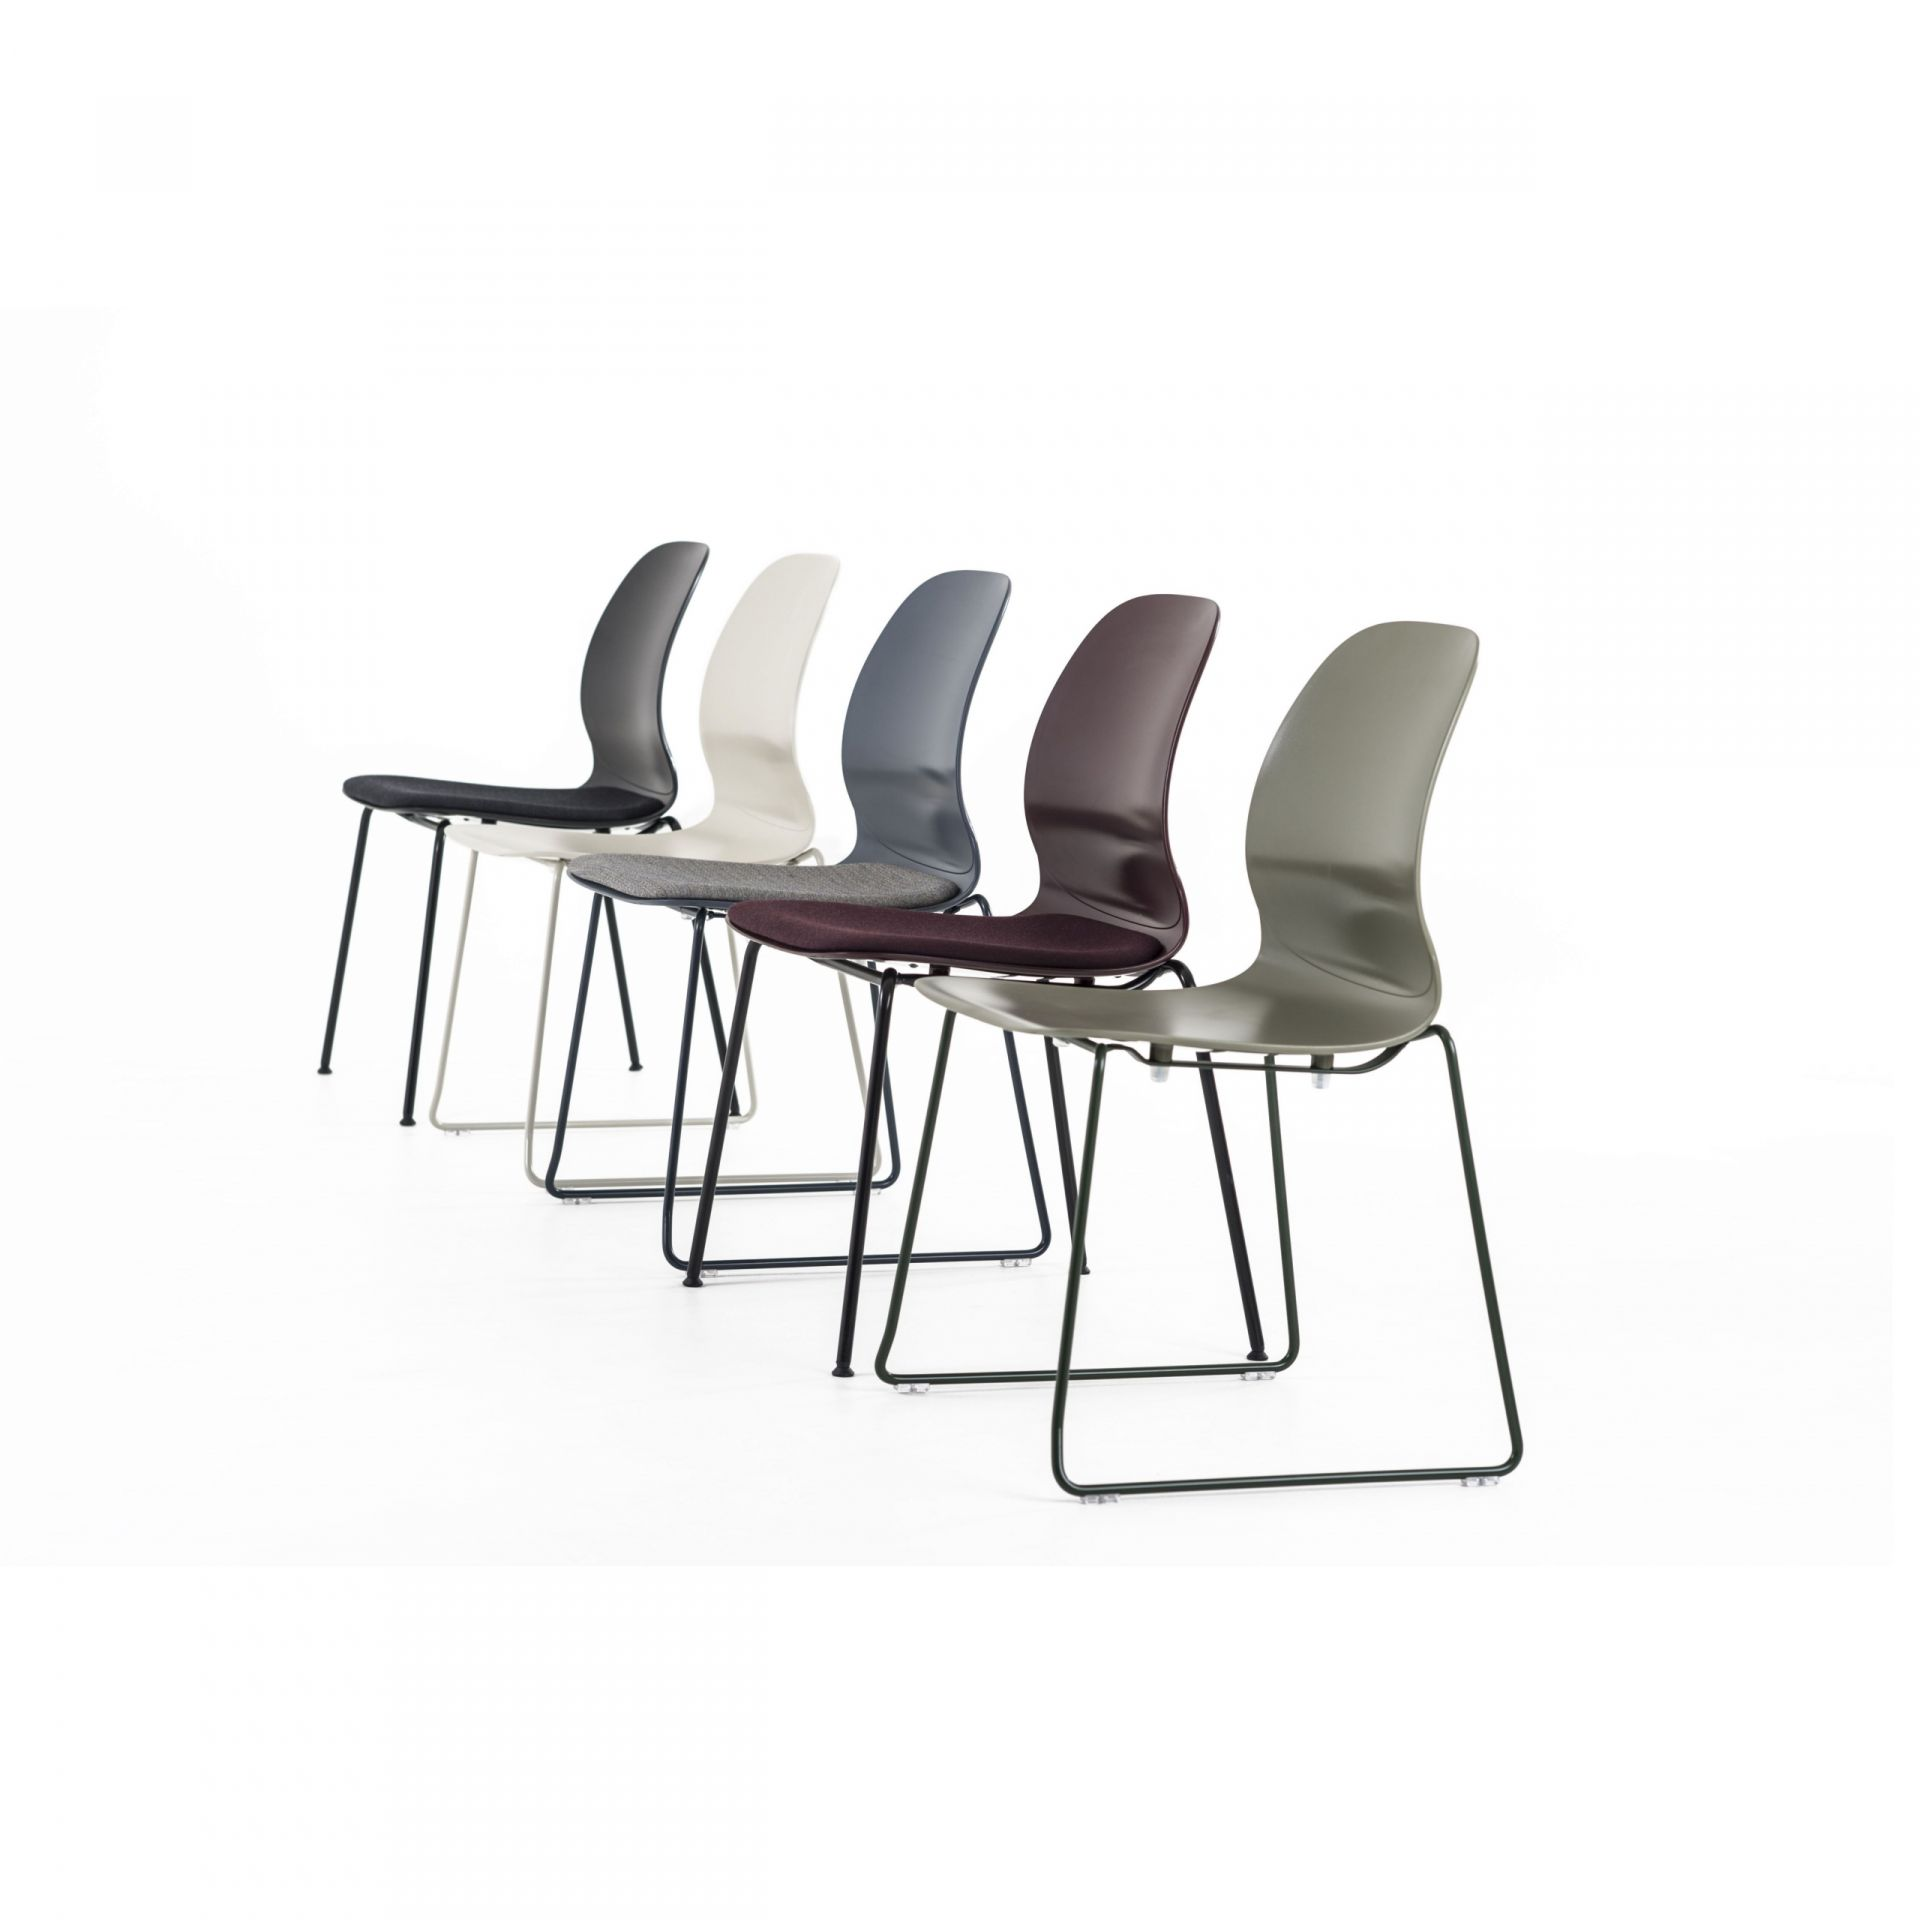 Archie Chair with sledge product image 3